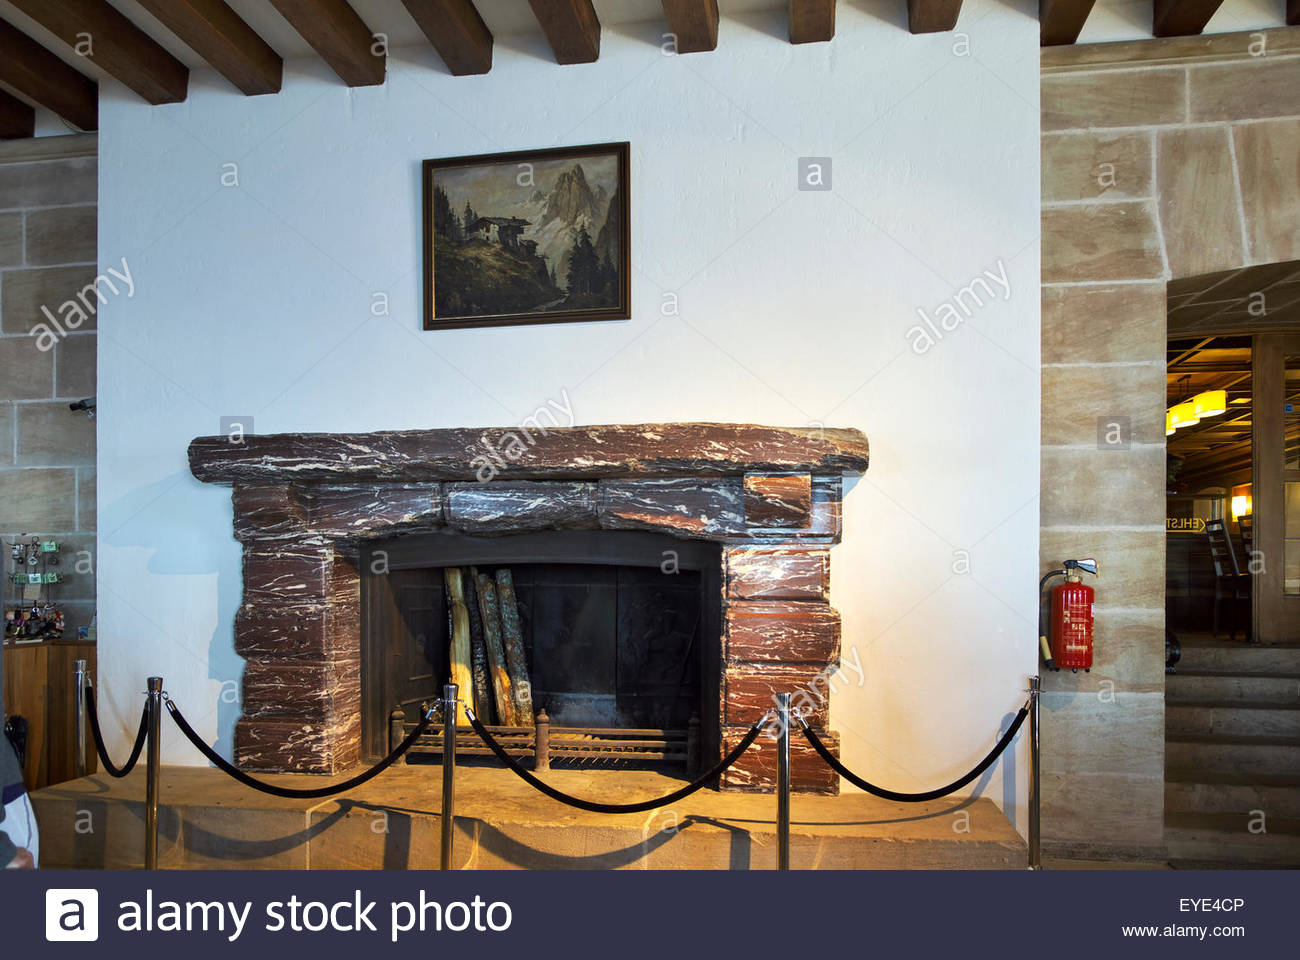 Fireplace in the interior of das Kehlsteinhaus, also known as Hitler's Eagle's Nest. - Stock Image